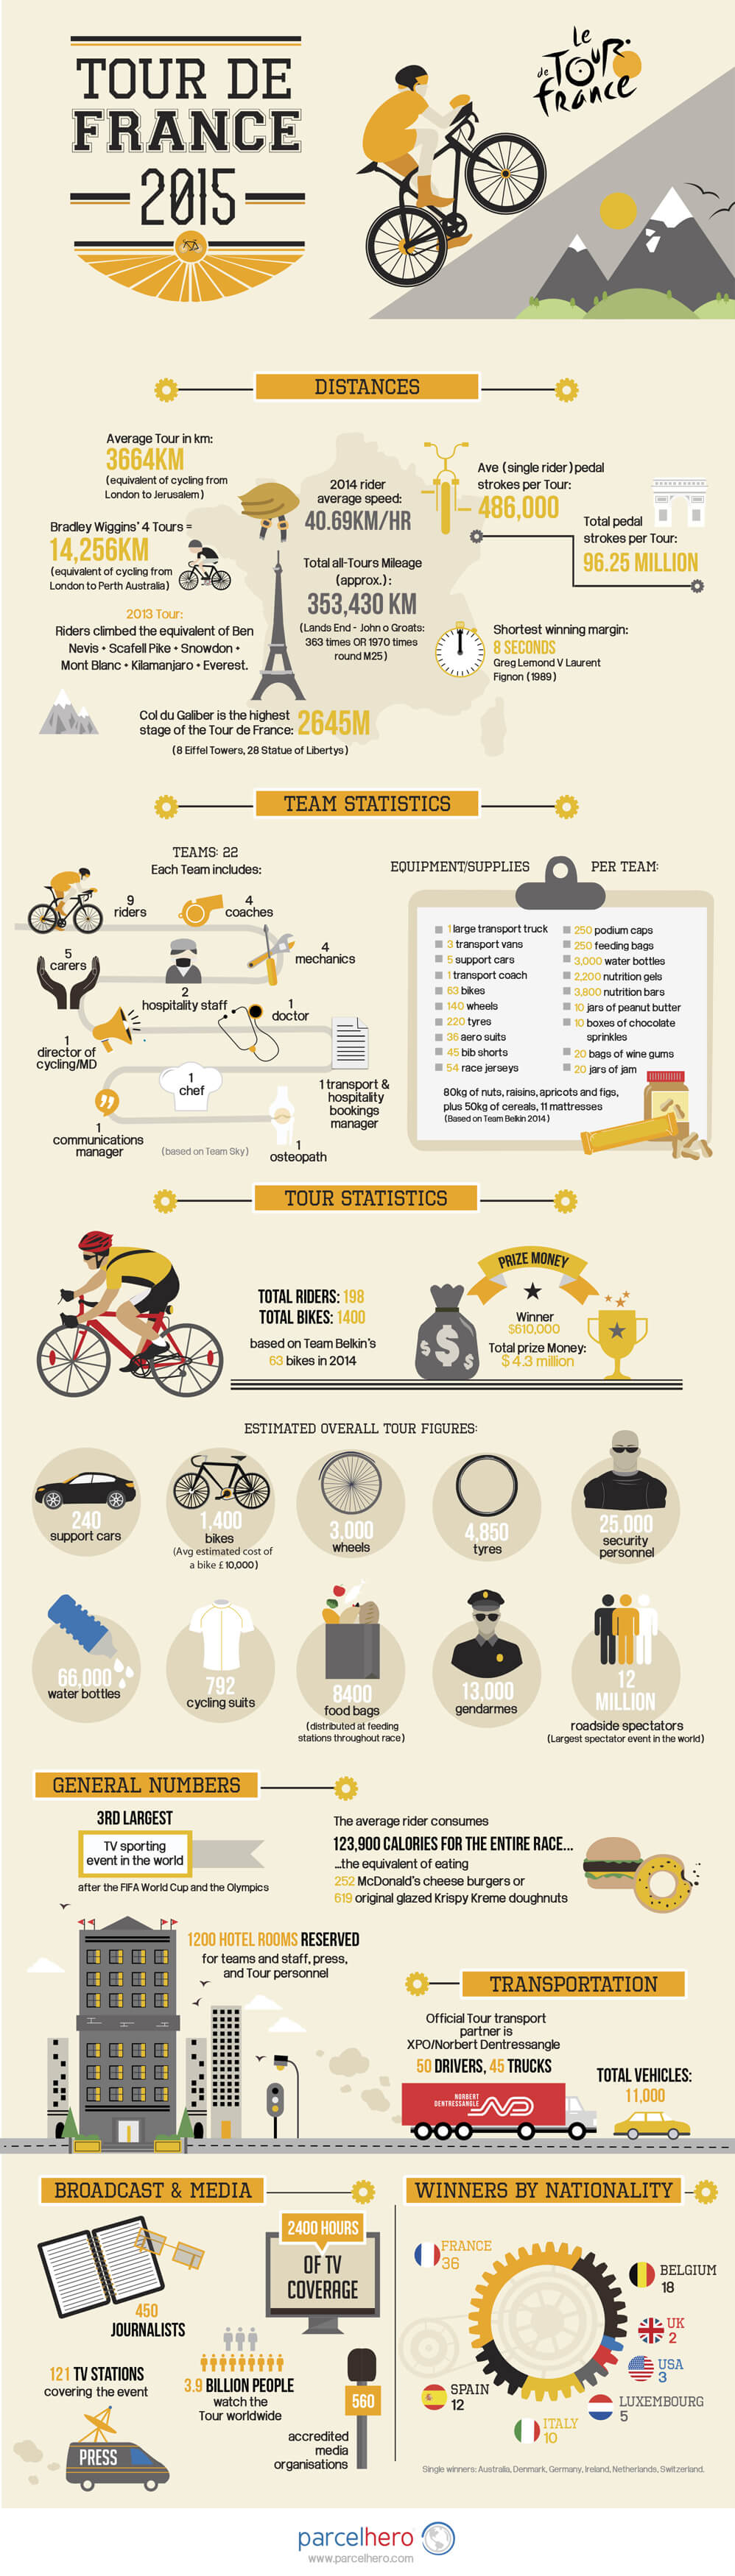 The Logistics of Le Tour de France